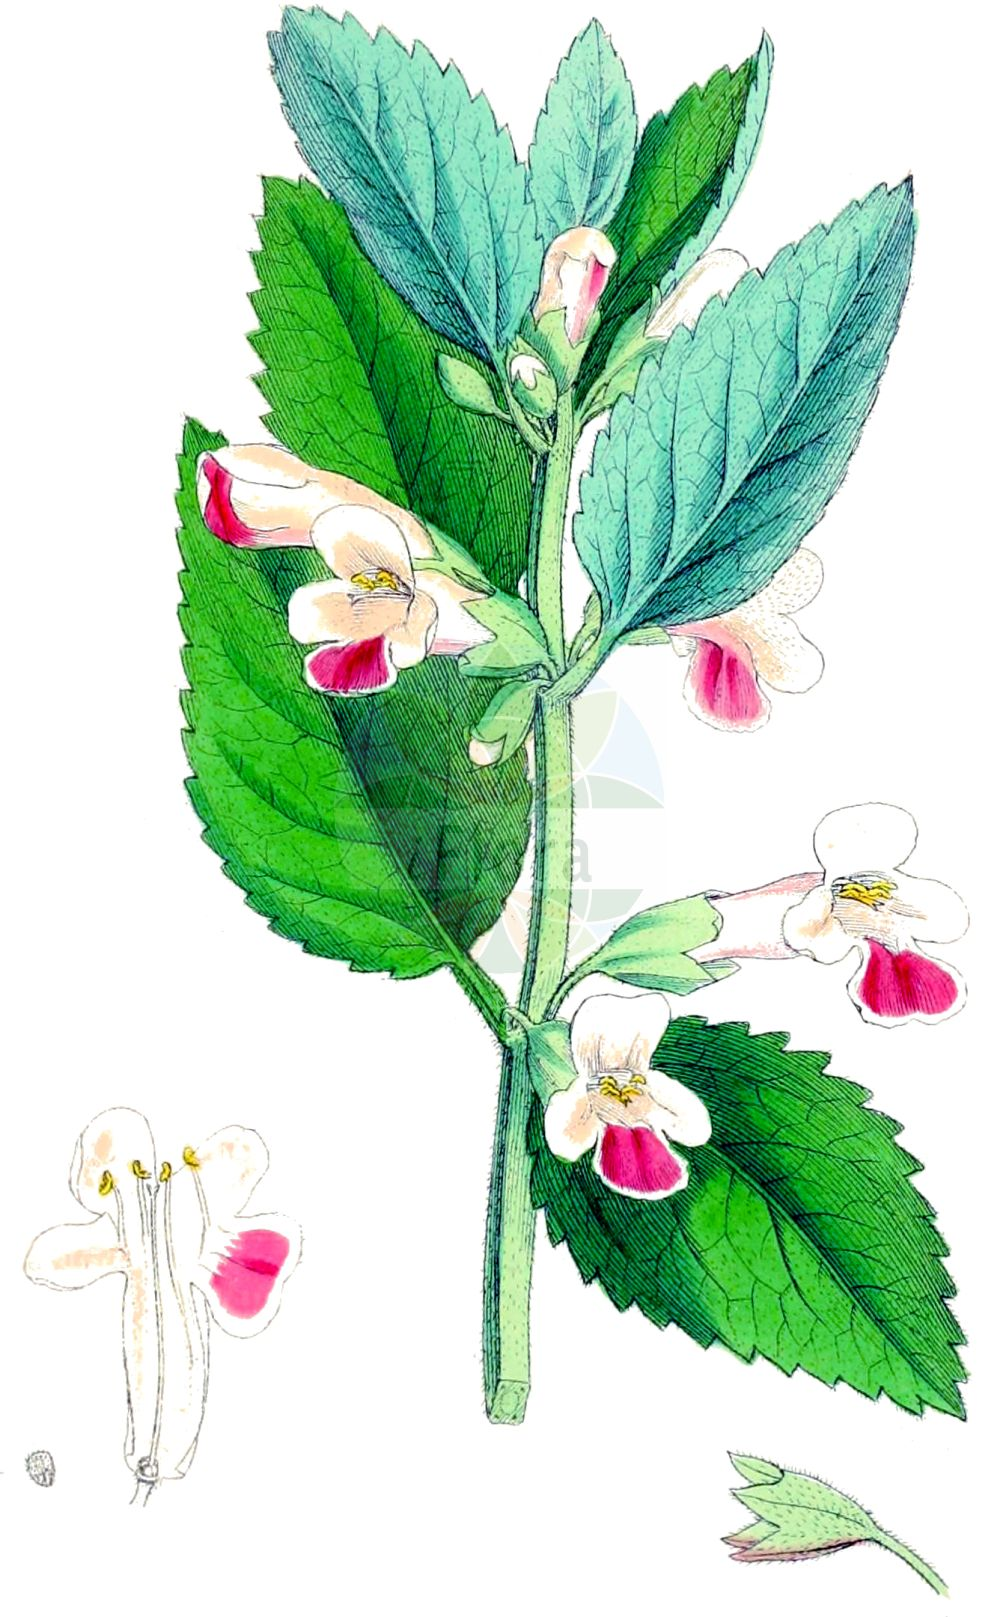 Historische Abbildung von Melittis melissophyllum (Immenblatt - Bastard Balm). Das Bild zeigt Blatt, Bluete, Frucht und Same. ---- Historical Drawing of Melittis melissophyllum (Immenblatt - Bastard Balm).The image is showing leaf, flower, fruit and seed.(Melittis melissophyllum,Immenblatt,Bastard Balm,Melittis melissophyllum,Immenblatt,Bastard Balm,Wood Bastard Balm,Melittis,Immenblatt,Bastard Balm,Lamiaceae,Lippenbluetengewaechse,Lippenbluetler,Nettle family,Blatt,Bluete,Frucht,Same,leaf,flower,fruit,seed,Sowerby (1790-1813))